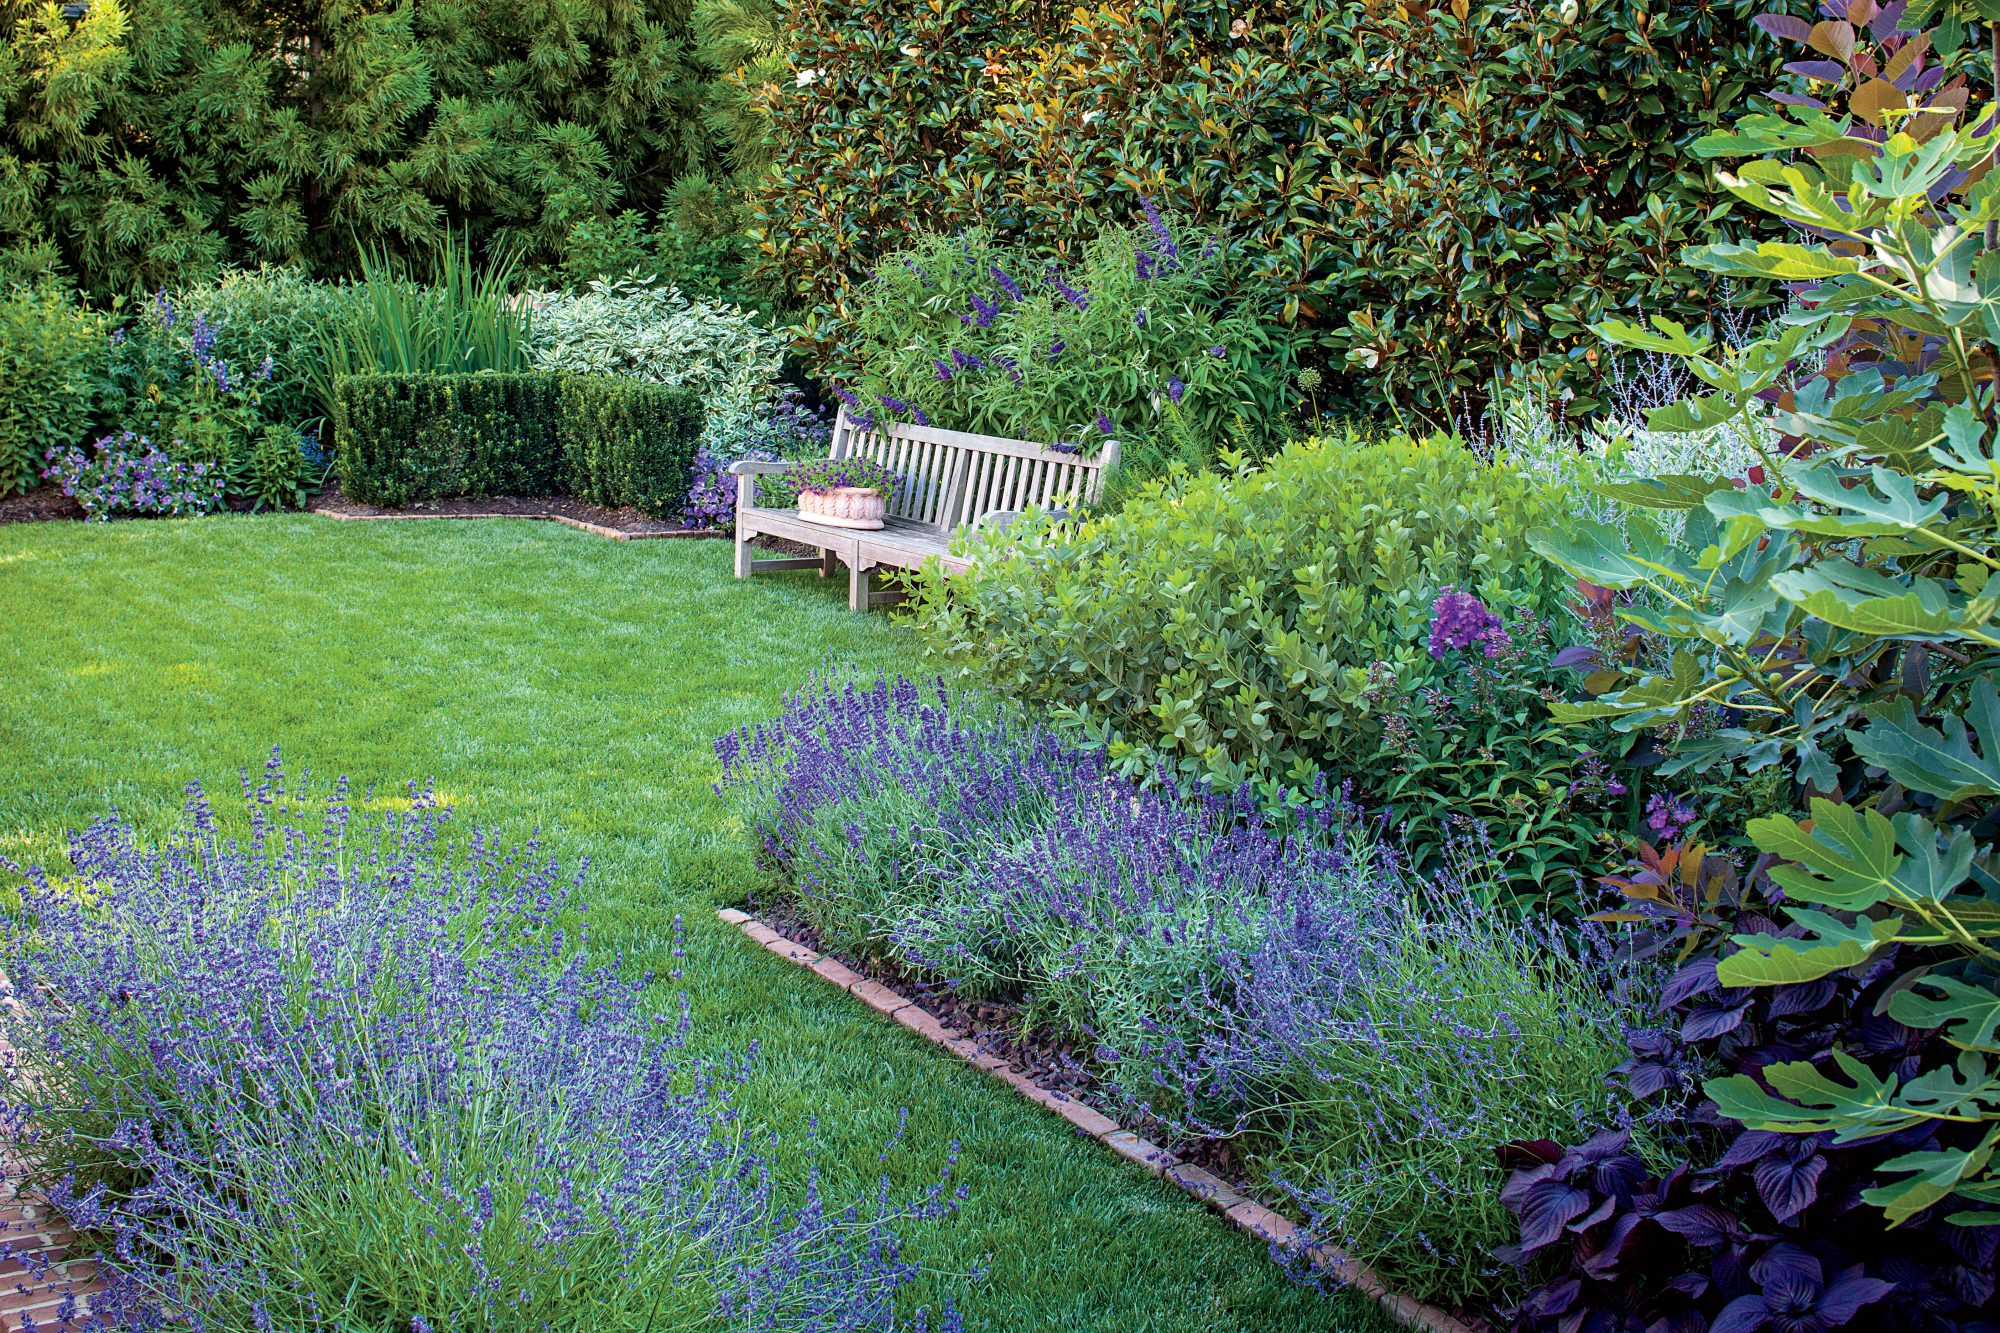 Backyard Garden in Shades of Blue